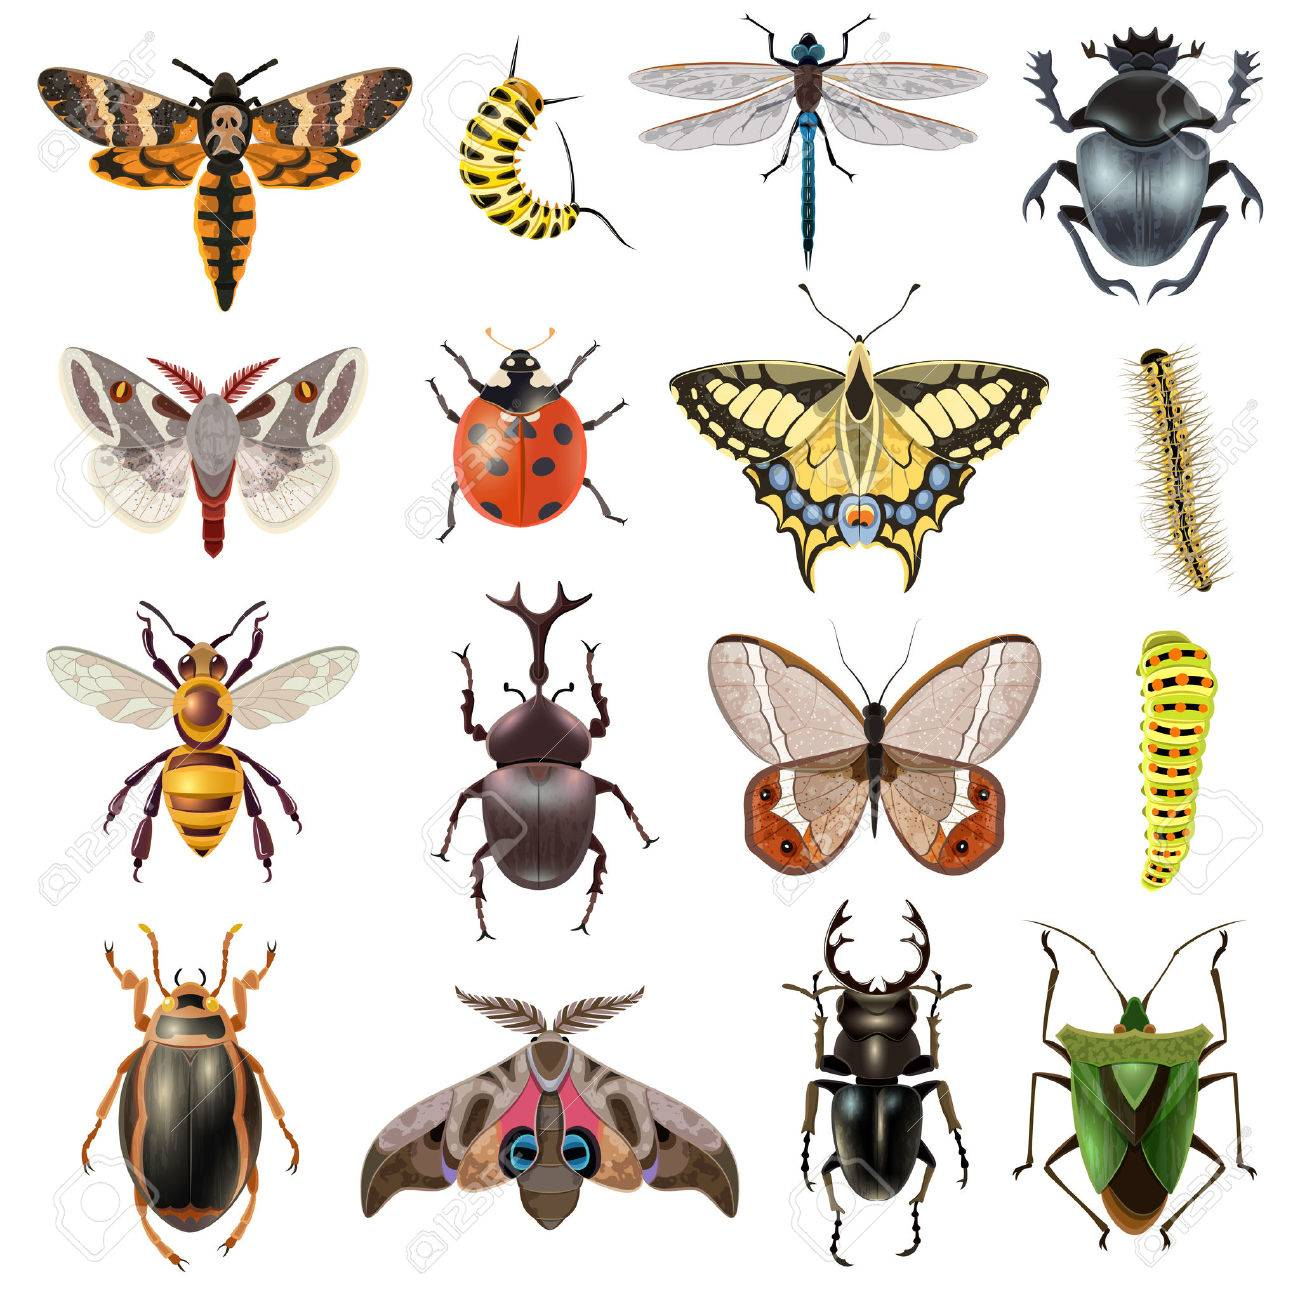 Insects realistic icons set with butterfly and beetles isolated vector illustration - 51757448